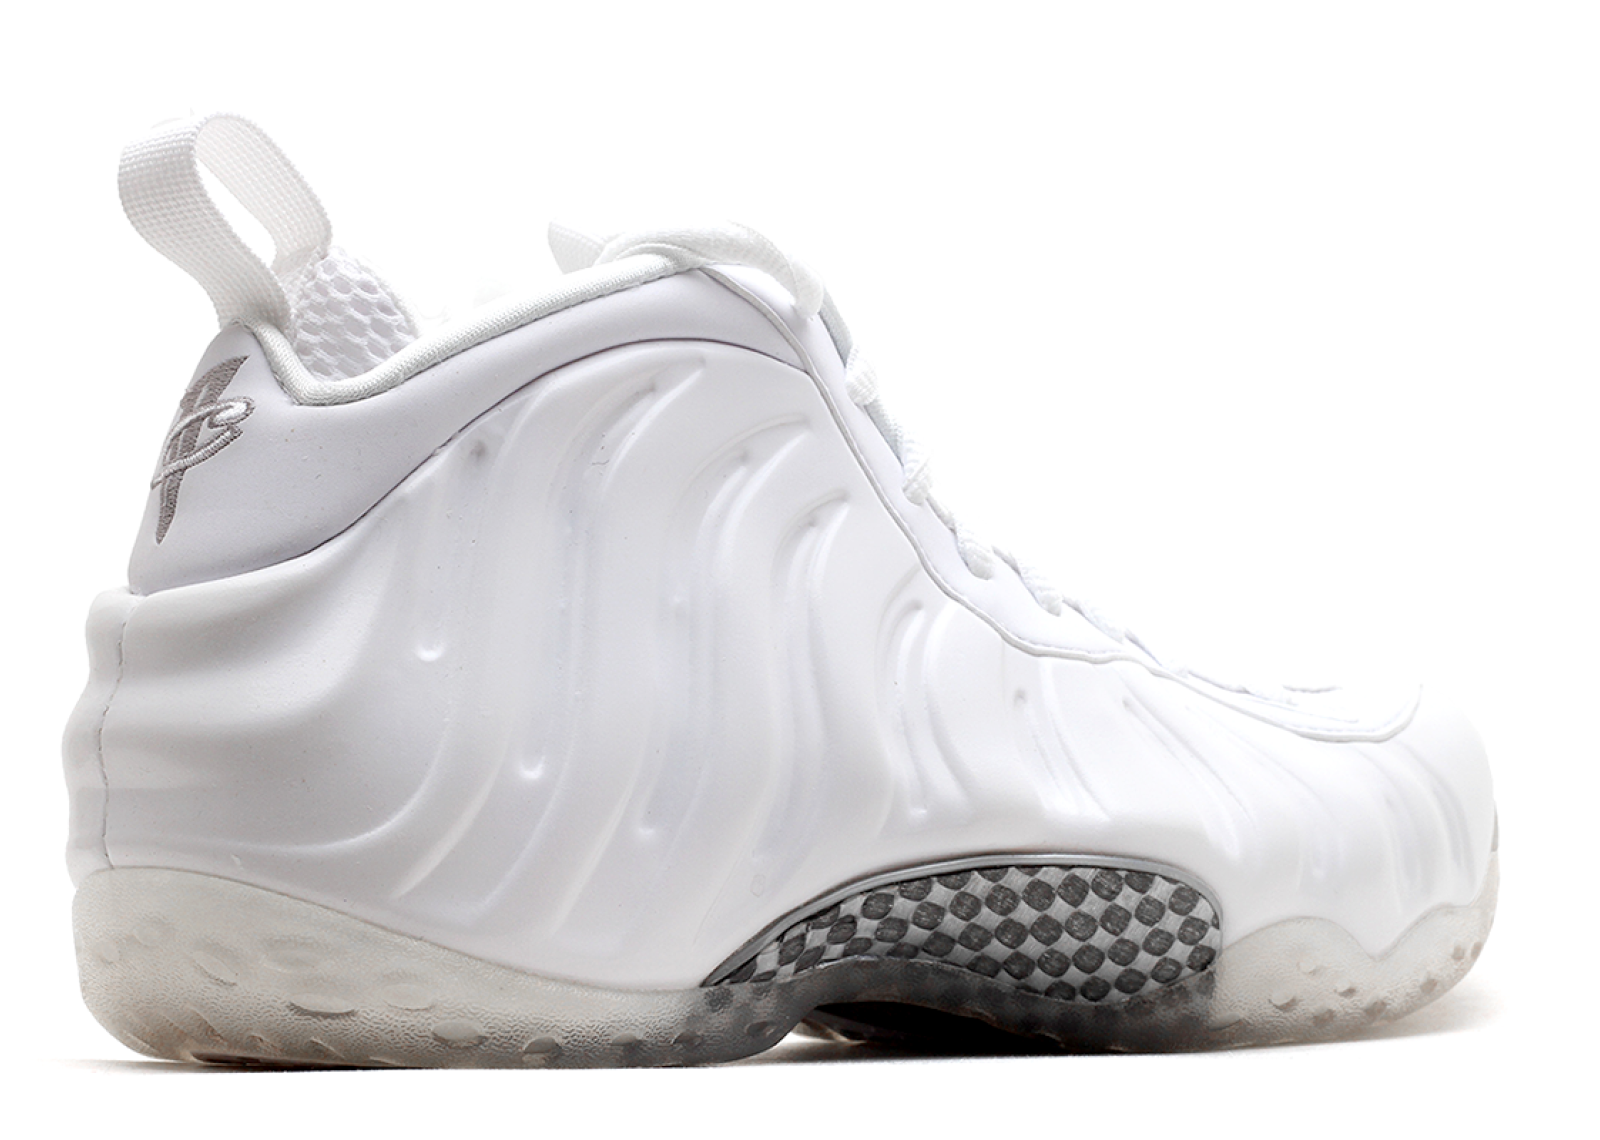 b4aaf5c2c7cfb Nike Air Foamposite One Whiteout Men